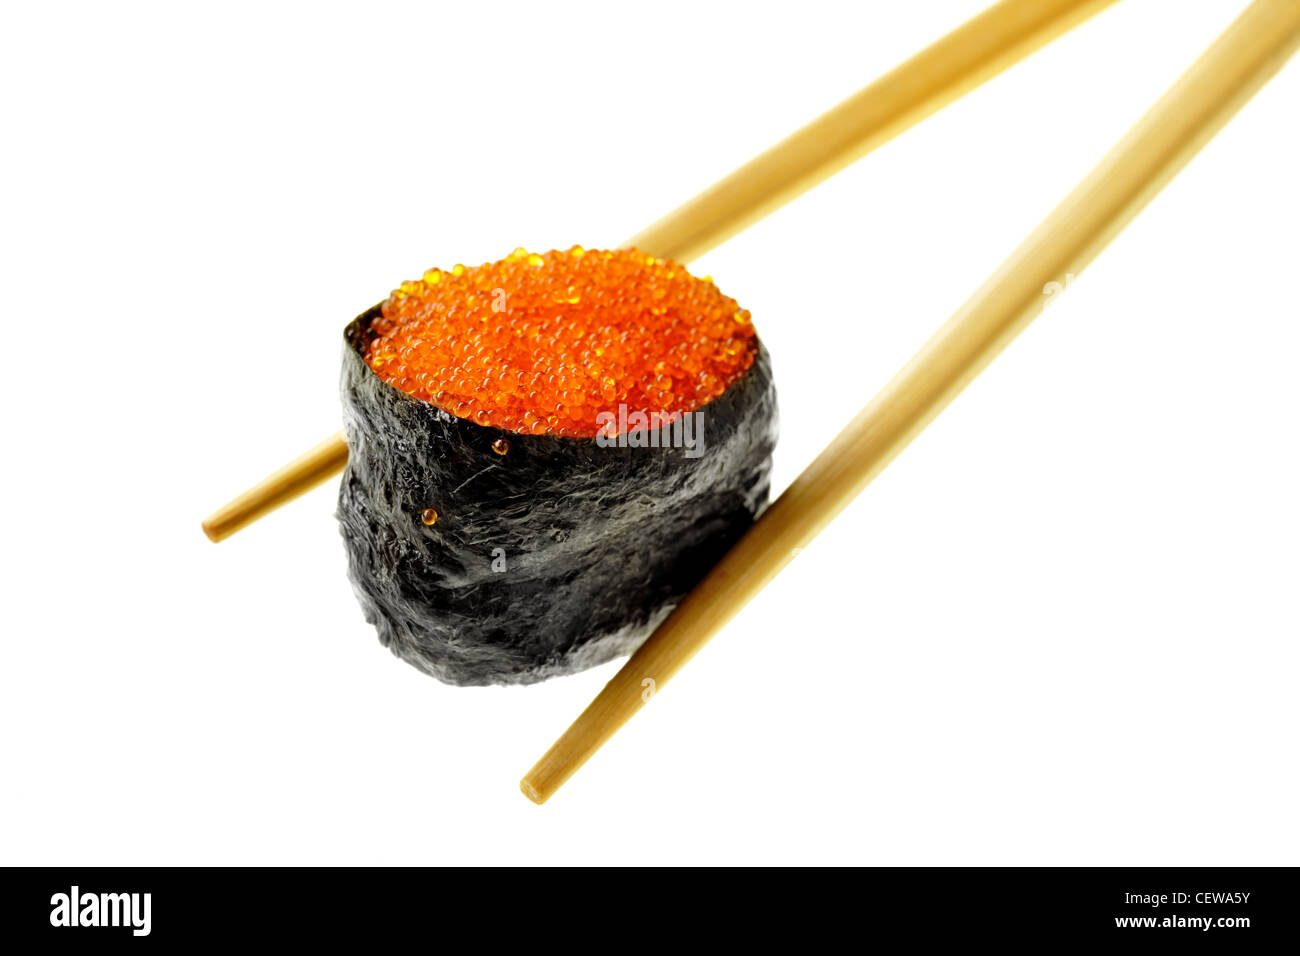 Sushi with fying fish caviar isolated over white background - Stock Image